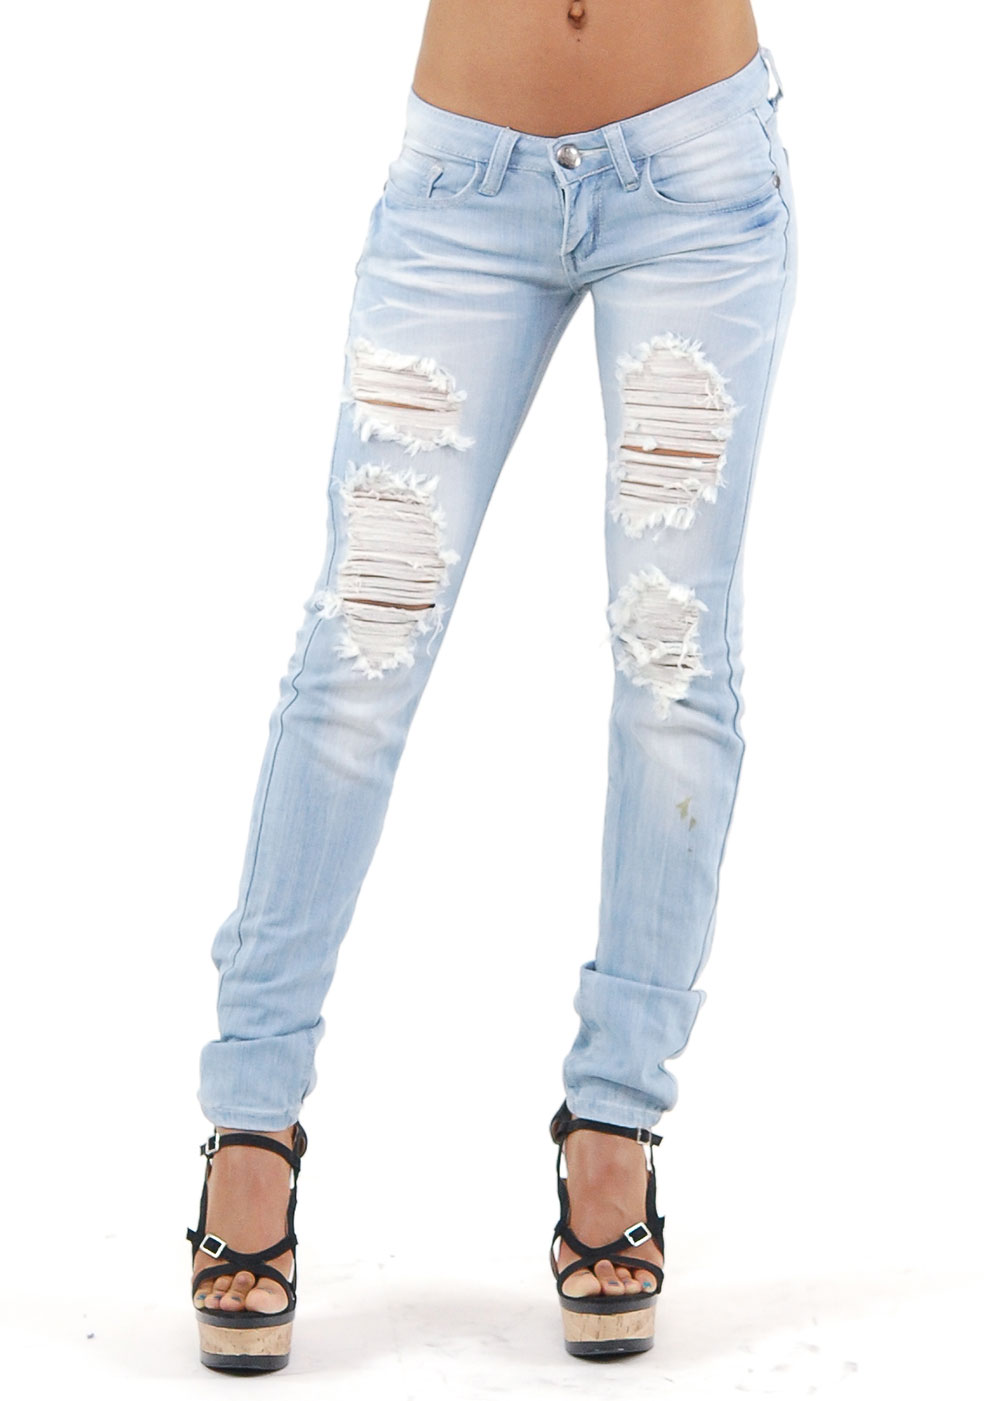 Jeans - Distressed Machine Jeans - Cute Denim Jeans - $32.99